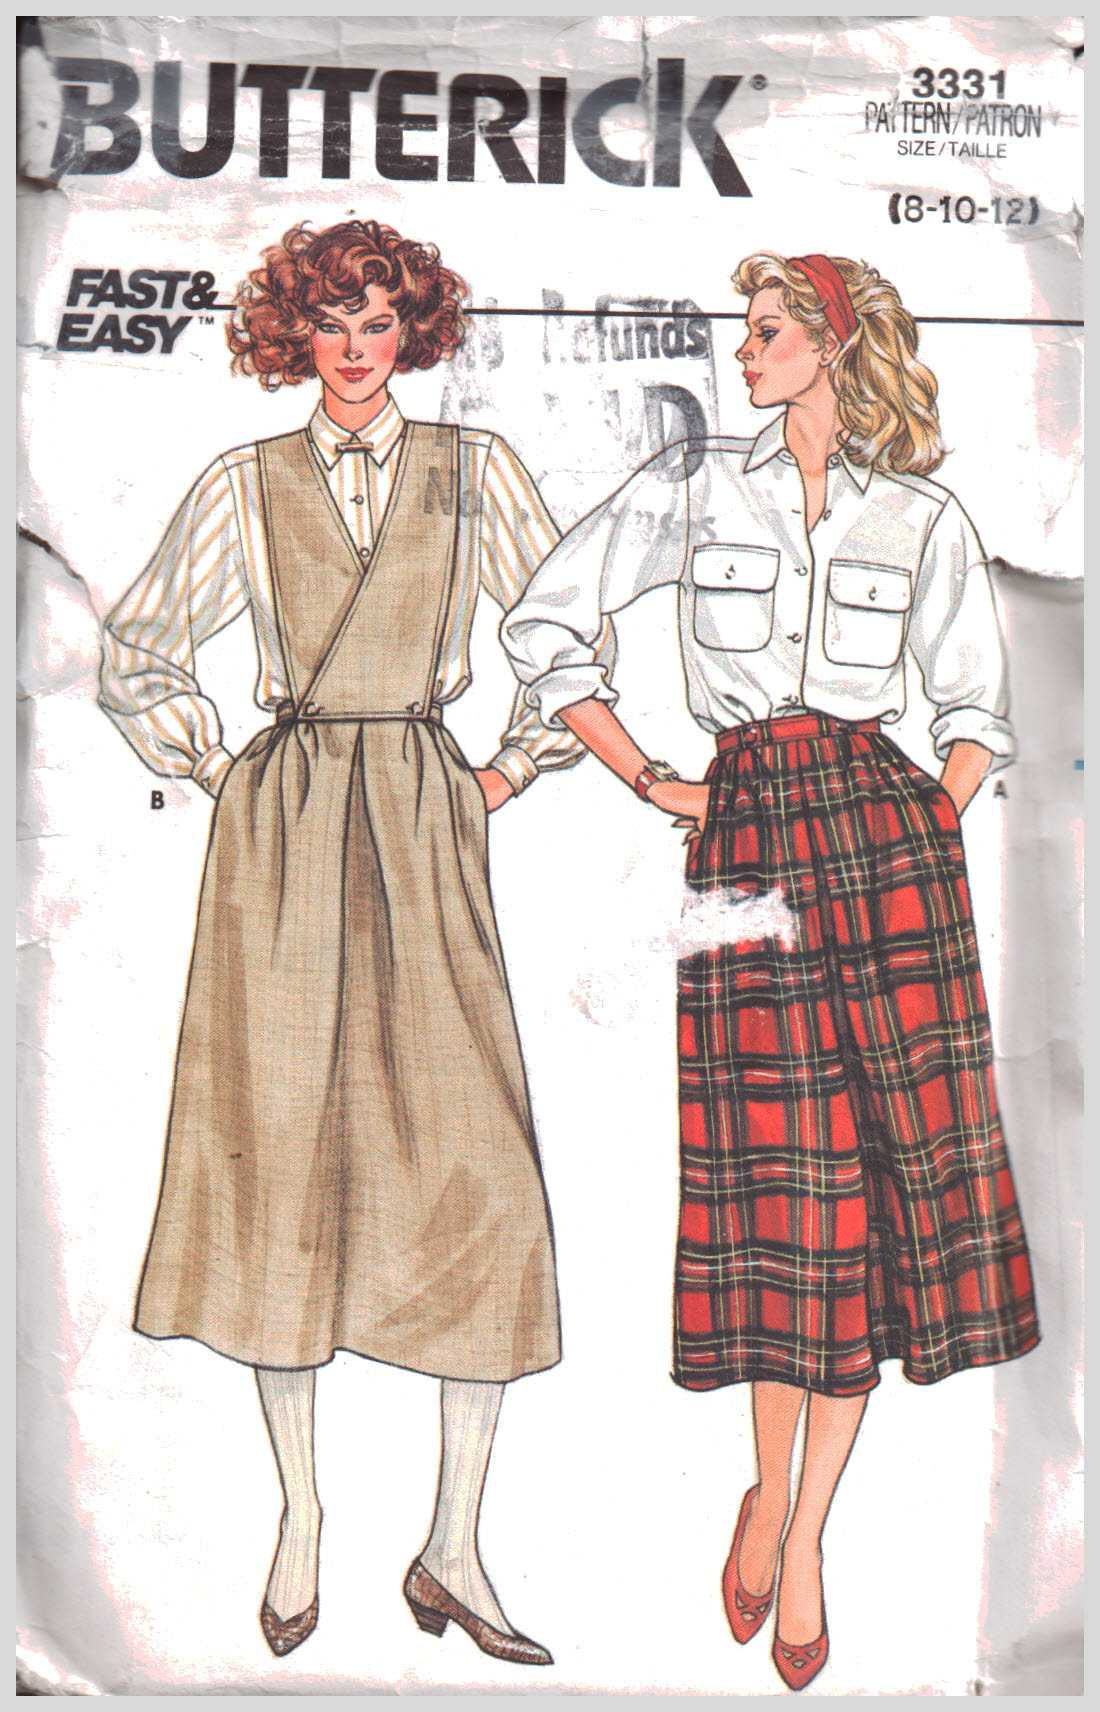 Kilt Sewing Pattern Best Design Inspiration